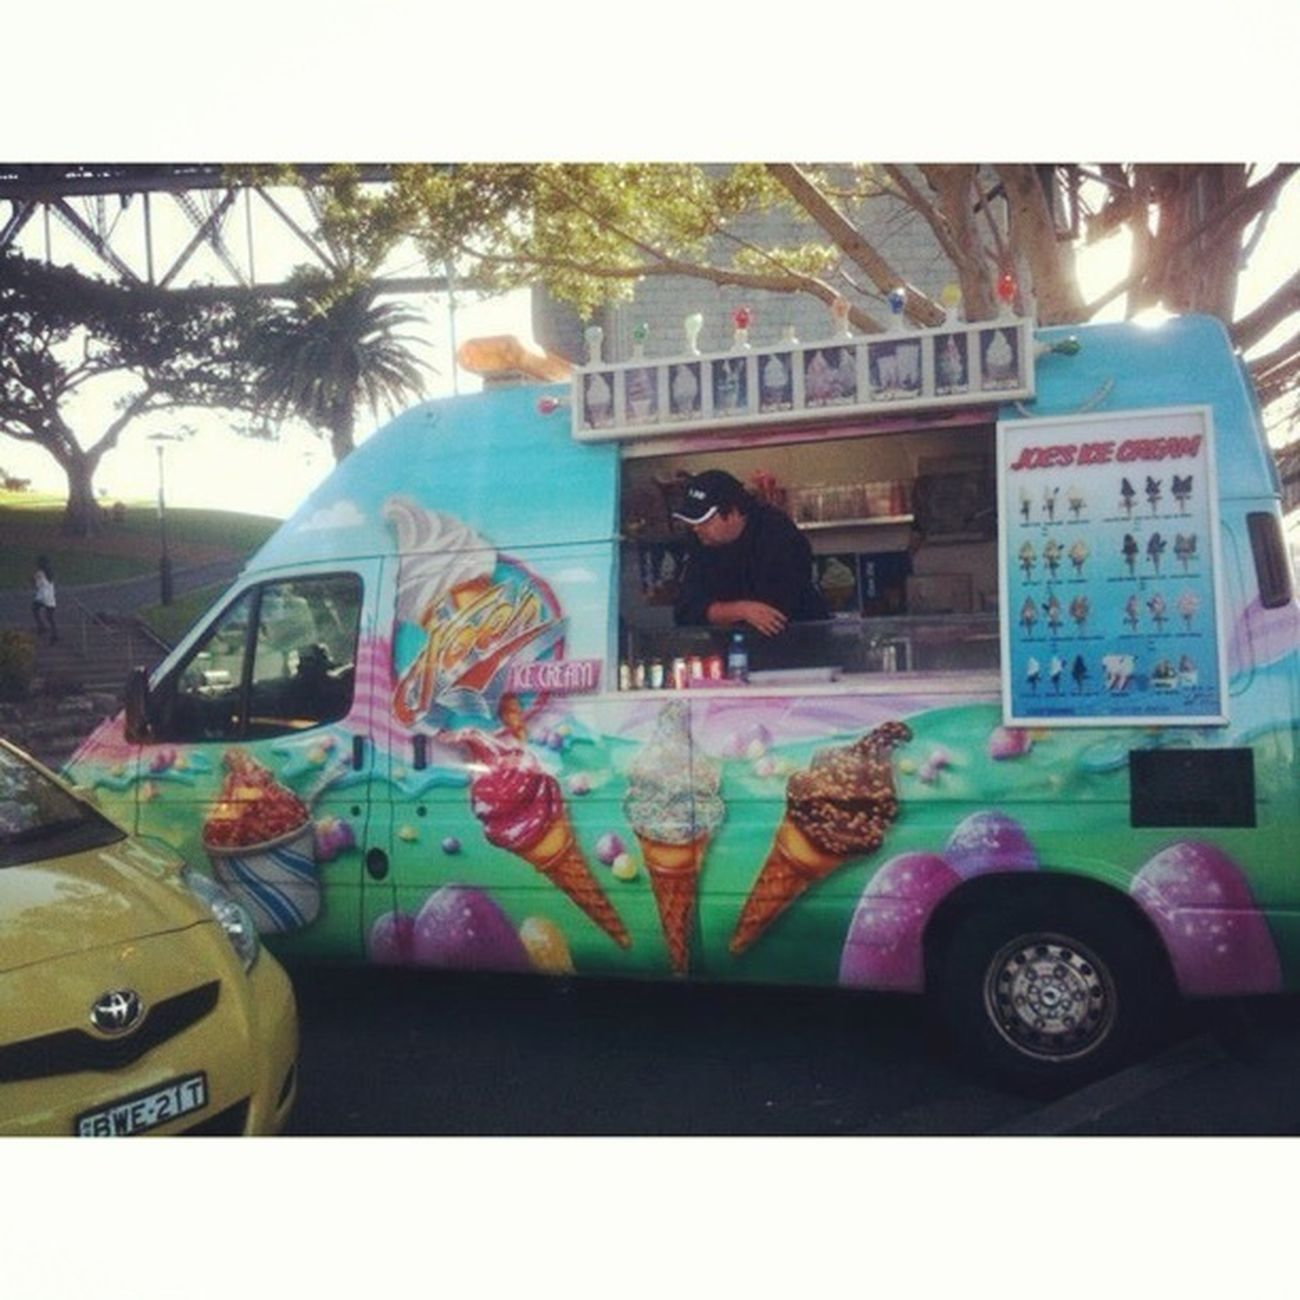 Sights of icecream trucks around BF, (or at least qc) would be a dream come true :/ Yay Lovely Surprise  Icecream Truck!